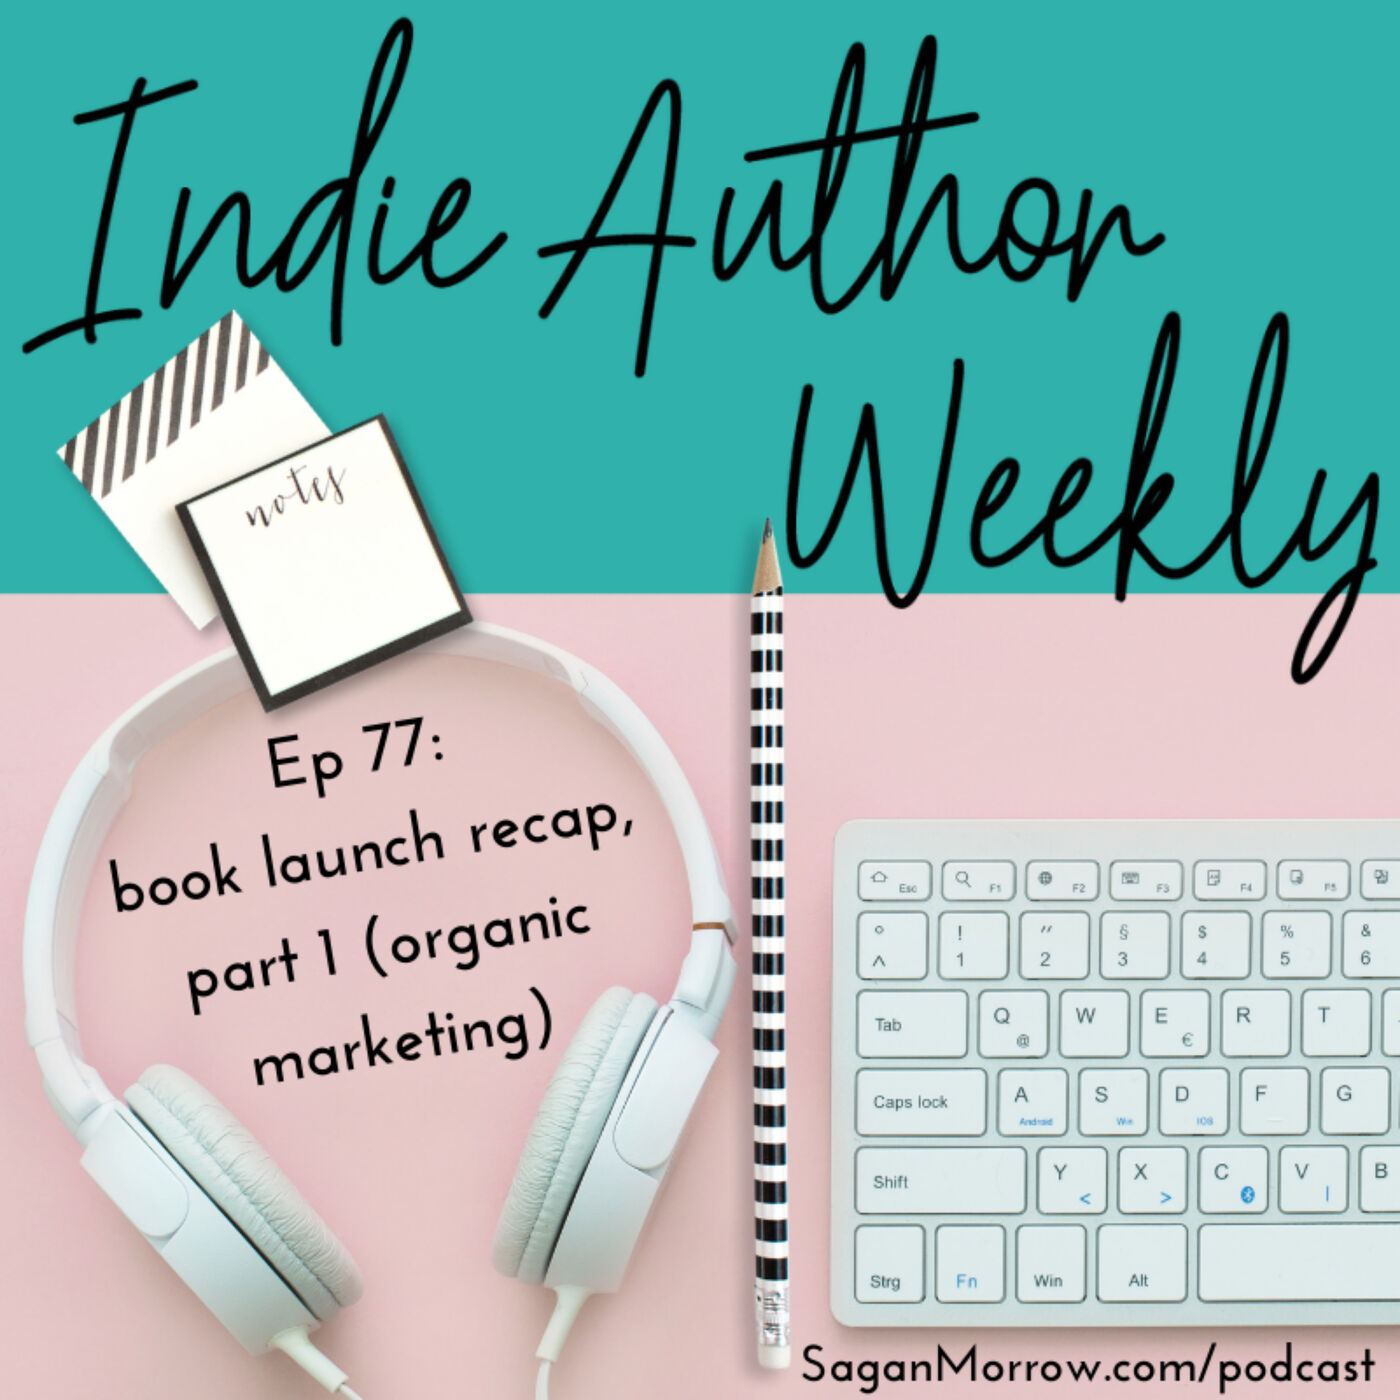 077: Book launch recap, part 1: organic marketing